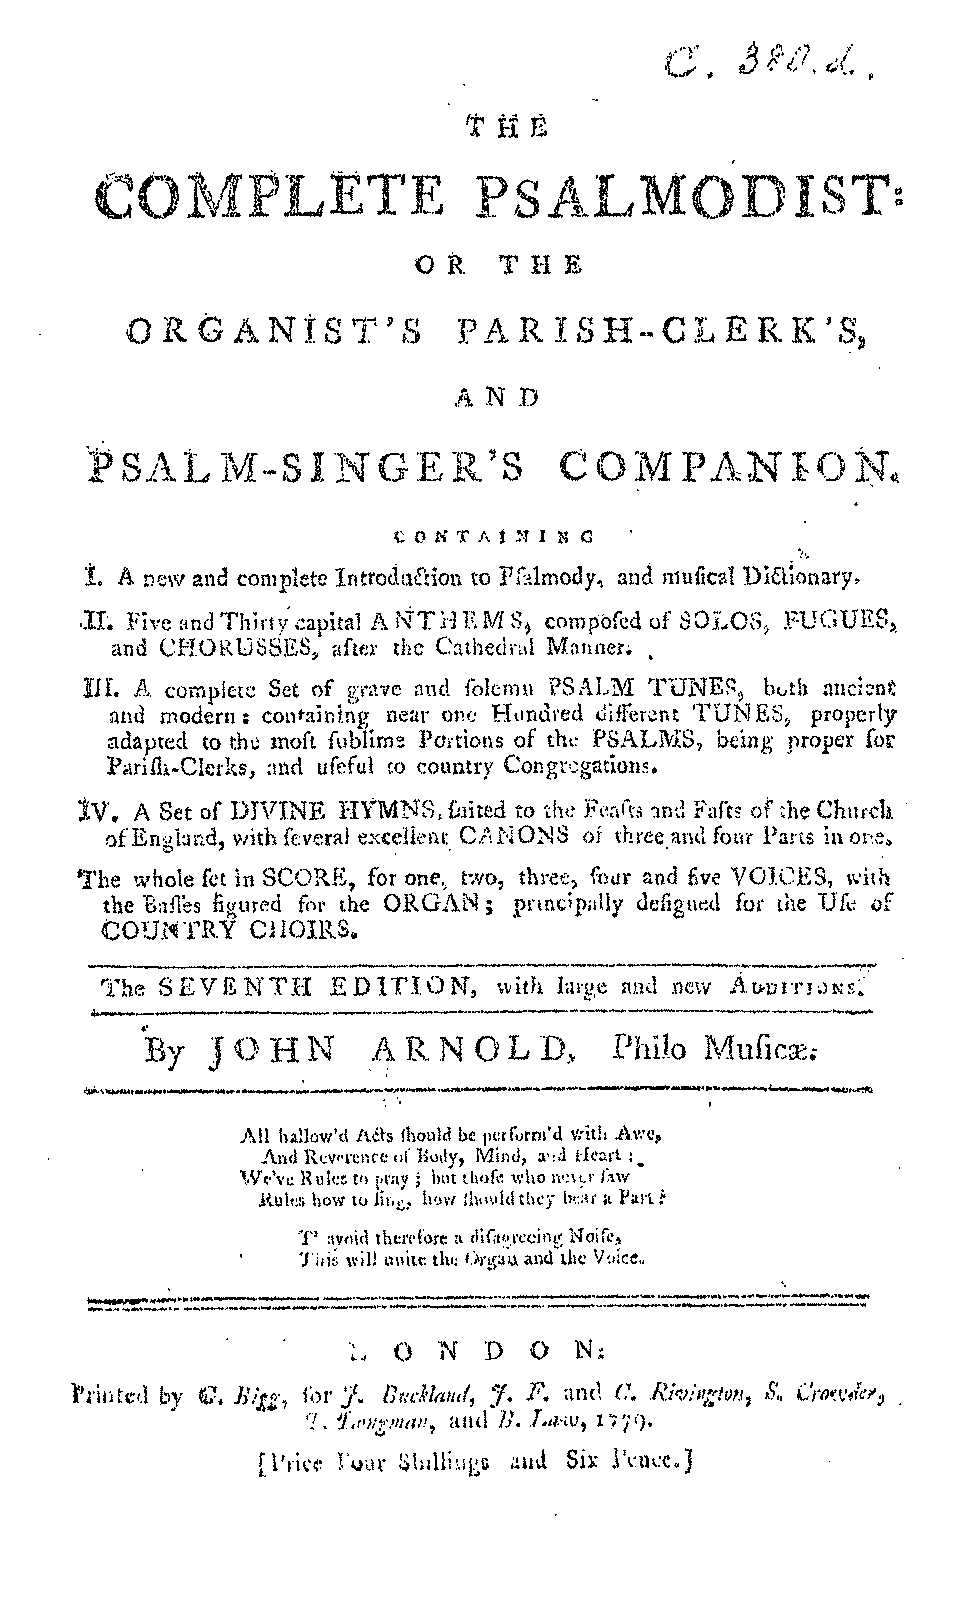 PMLP140450-Arnold - The Complete Psalmodist 1779 1.pdf